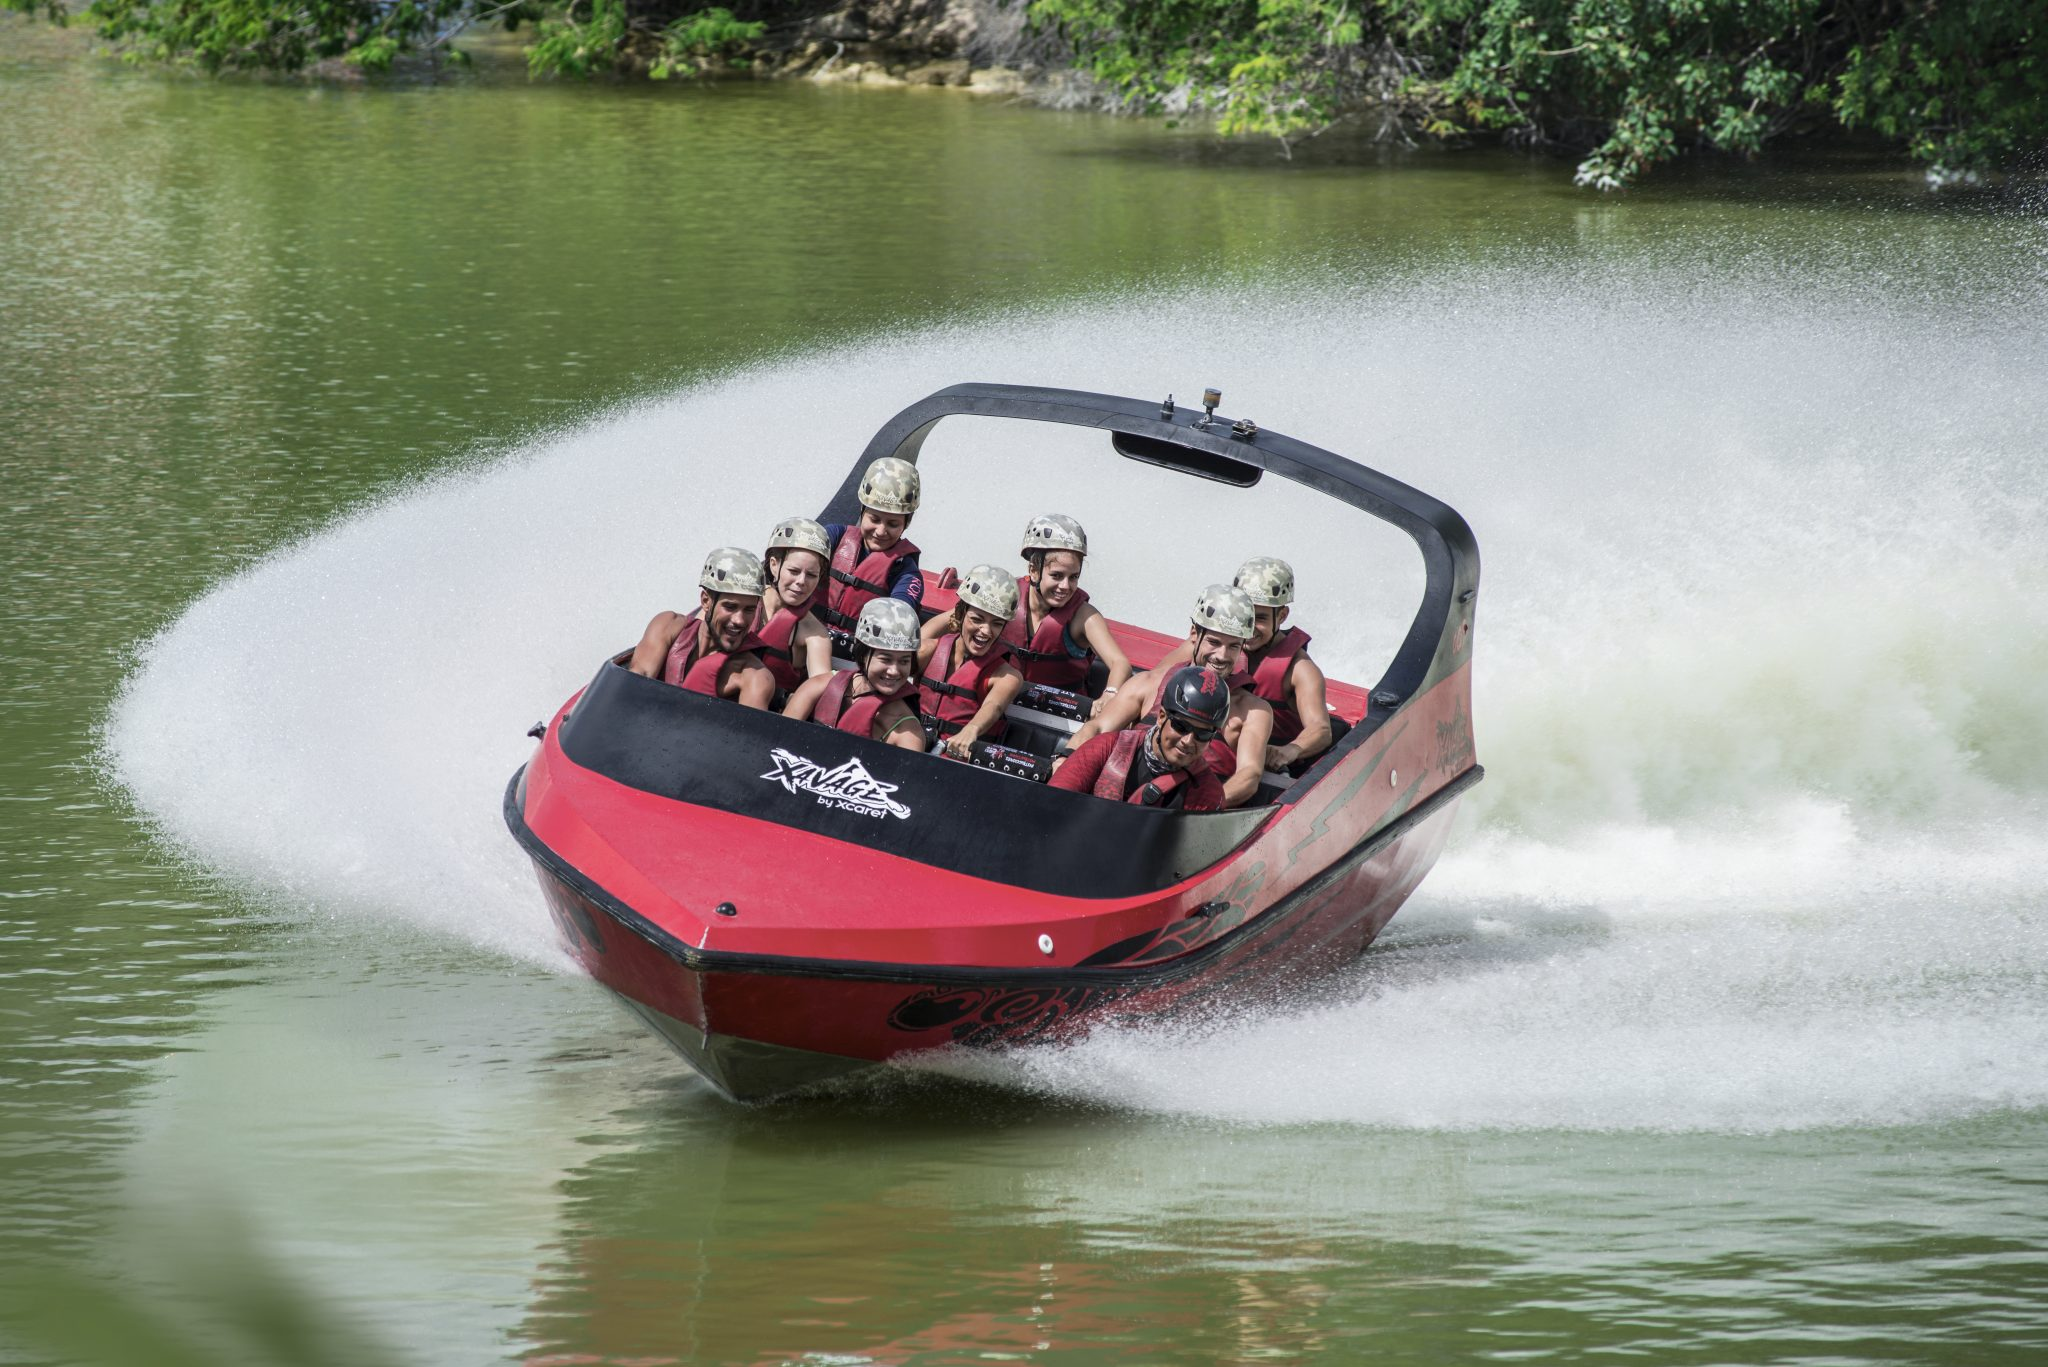 Xavage Jet Boat